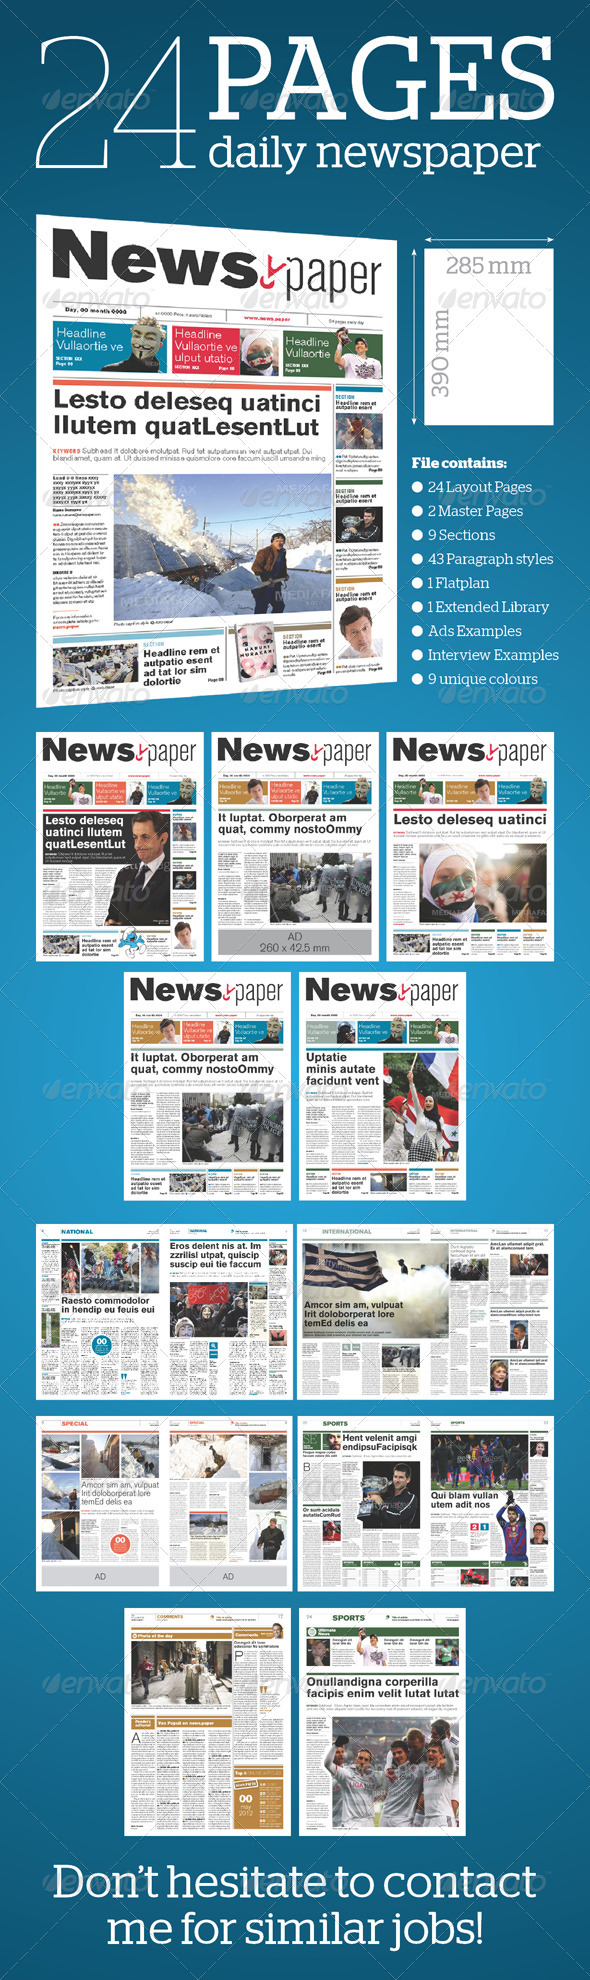 GraphicRiver 24 Pages Daily Newspaper 1586099